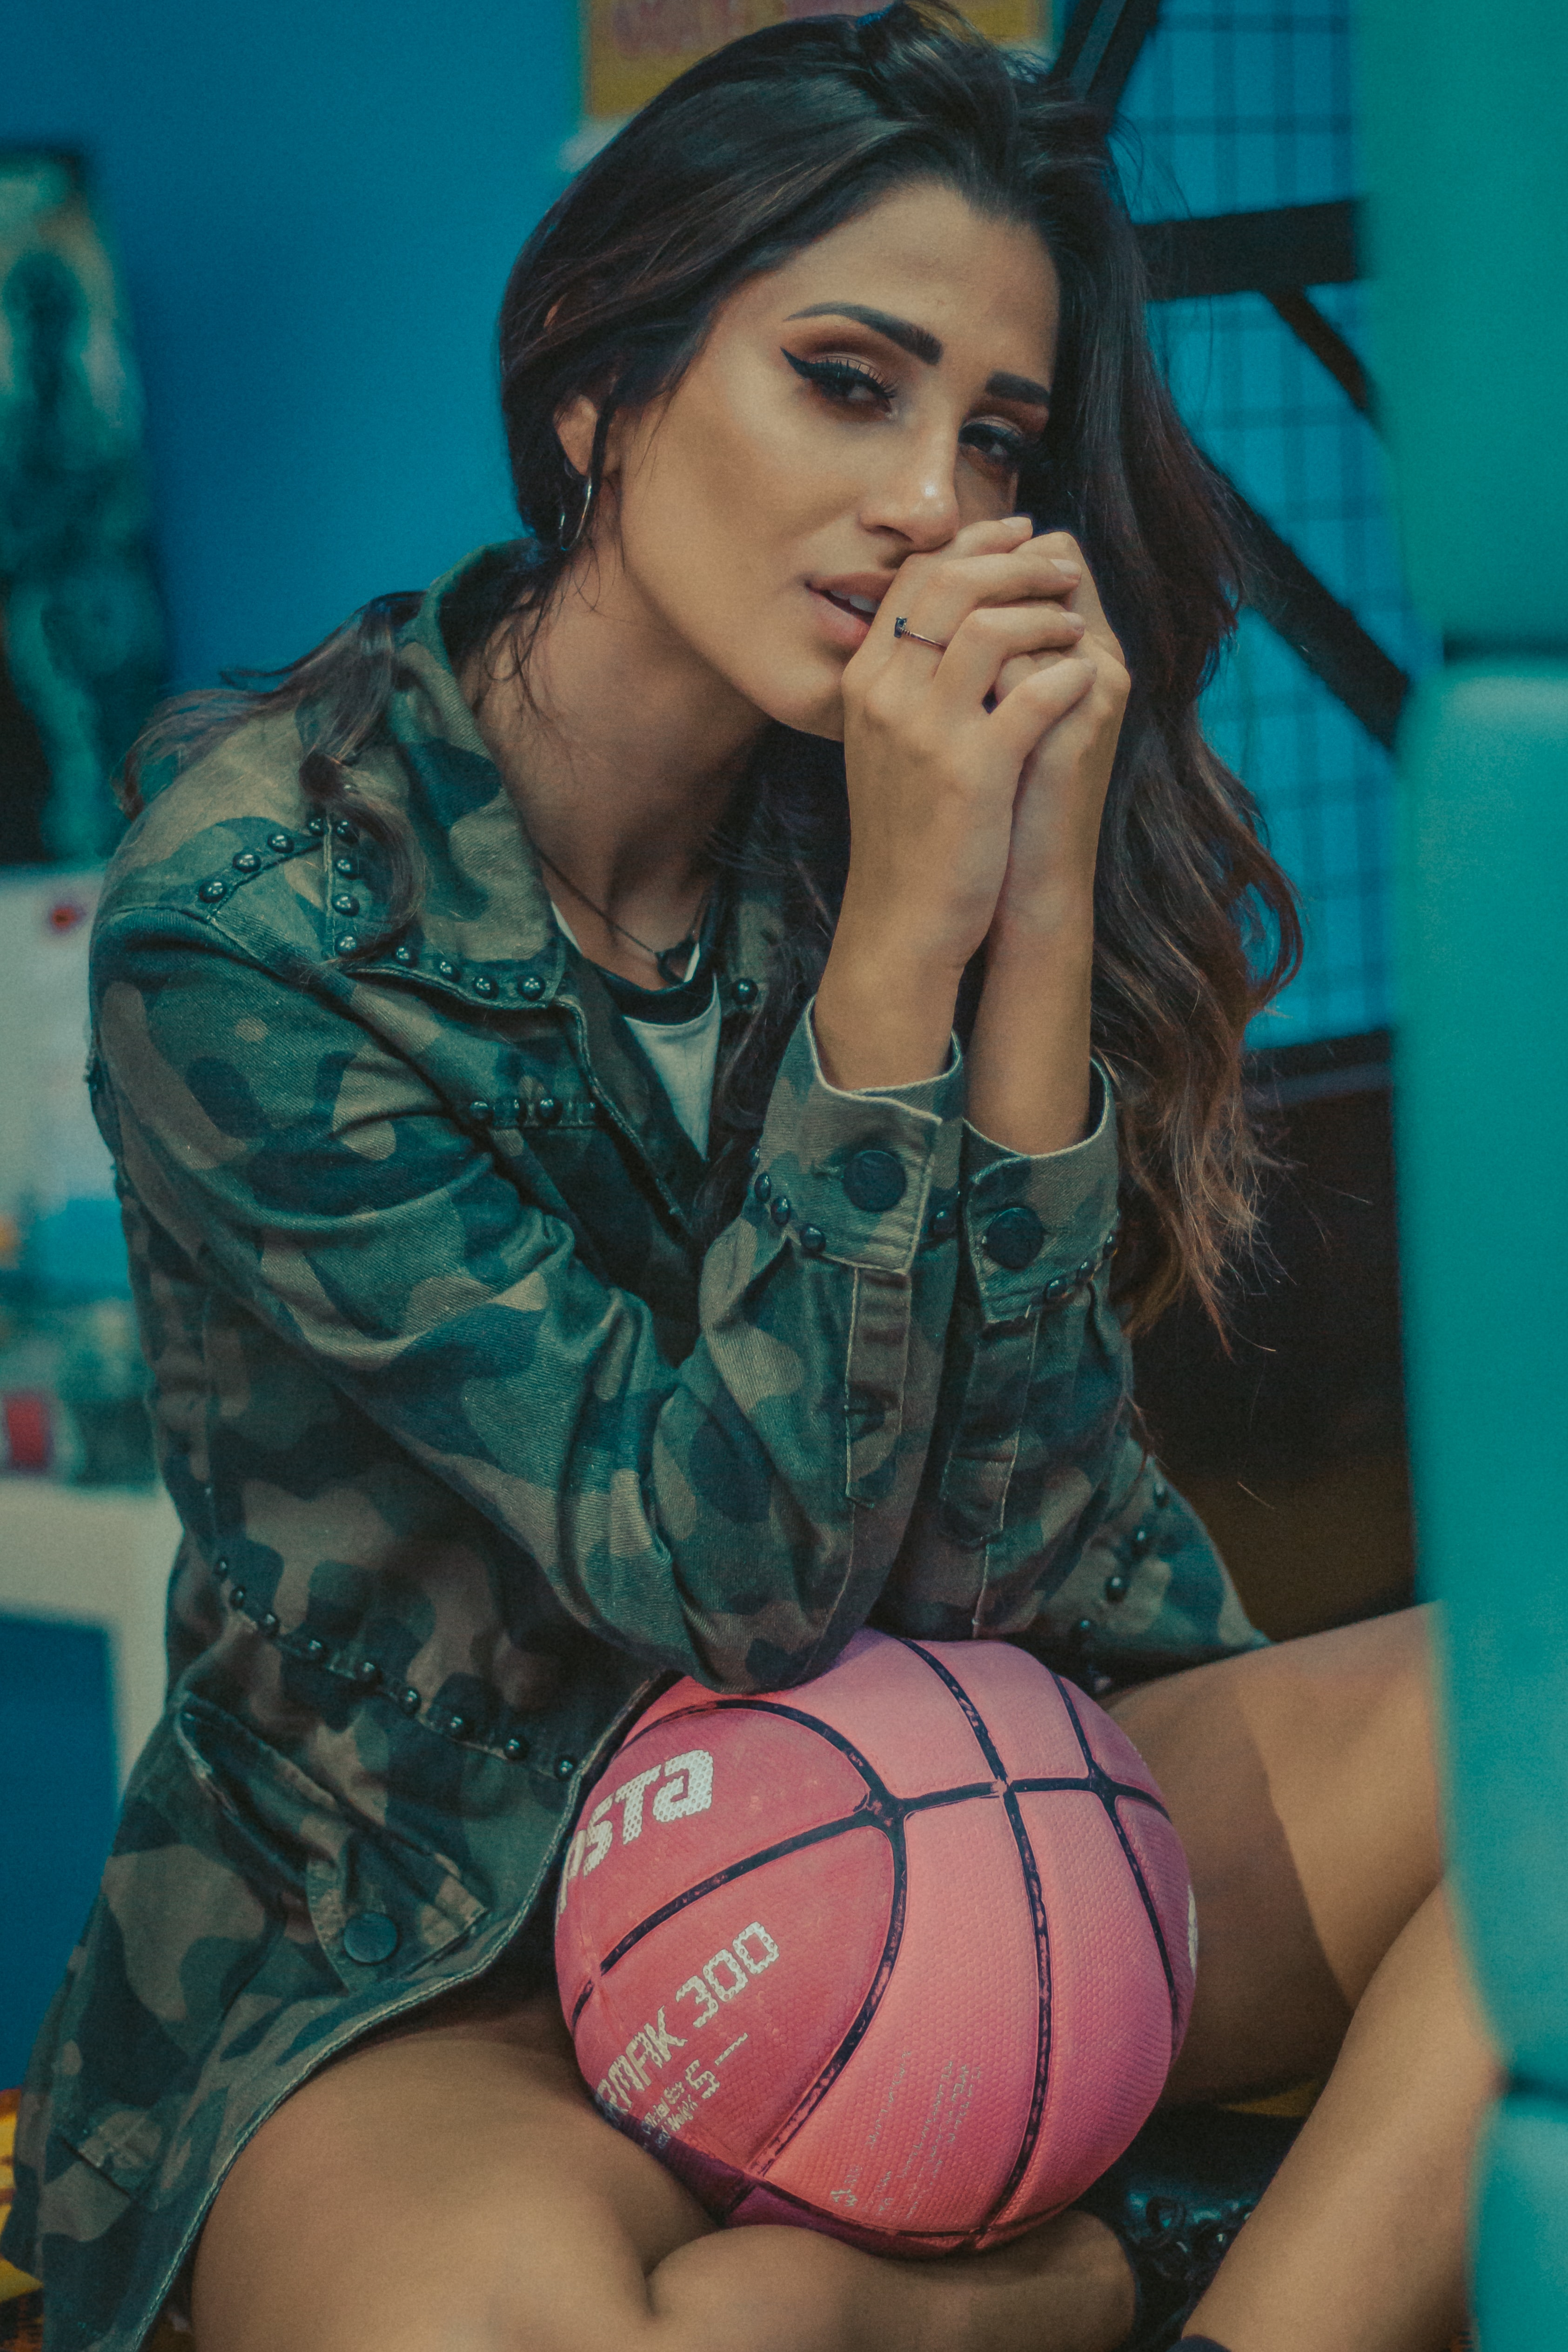 woman wearing camouflage jacket leaning her elbow on basketball on lap